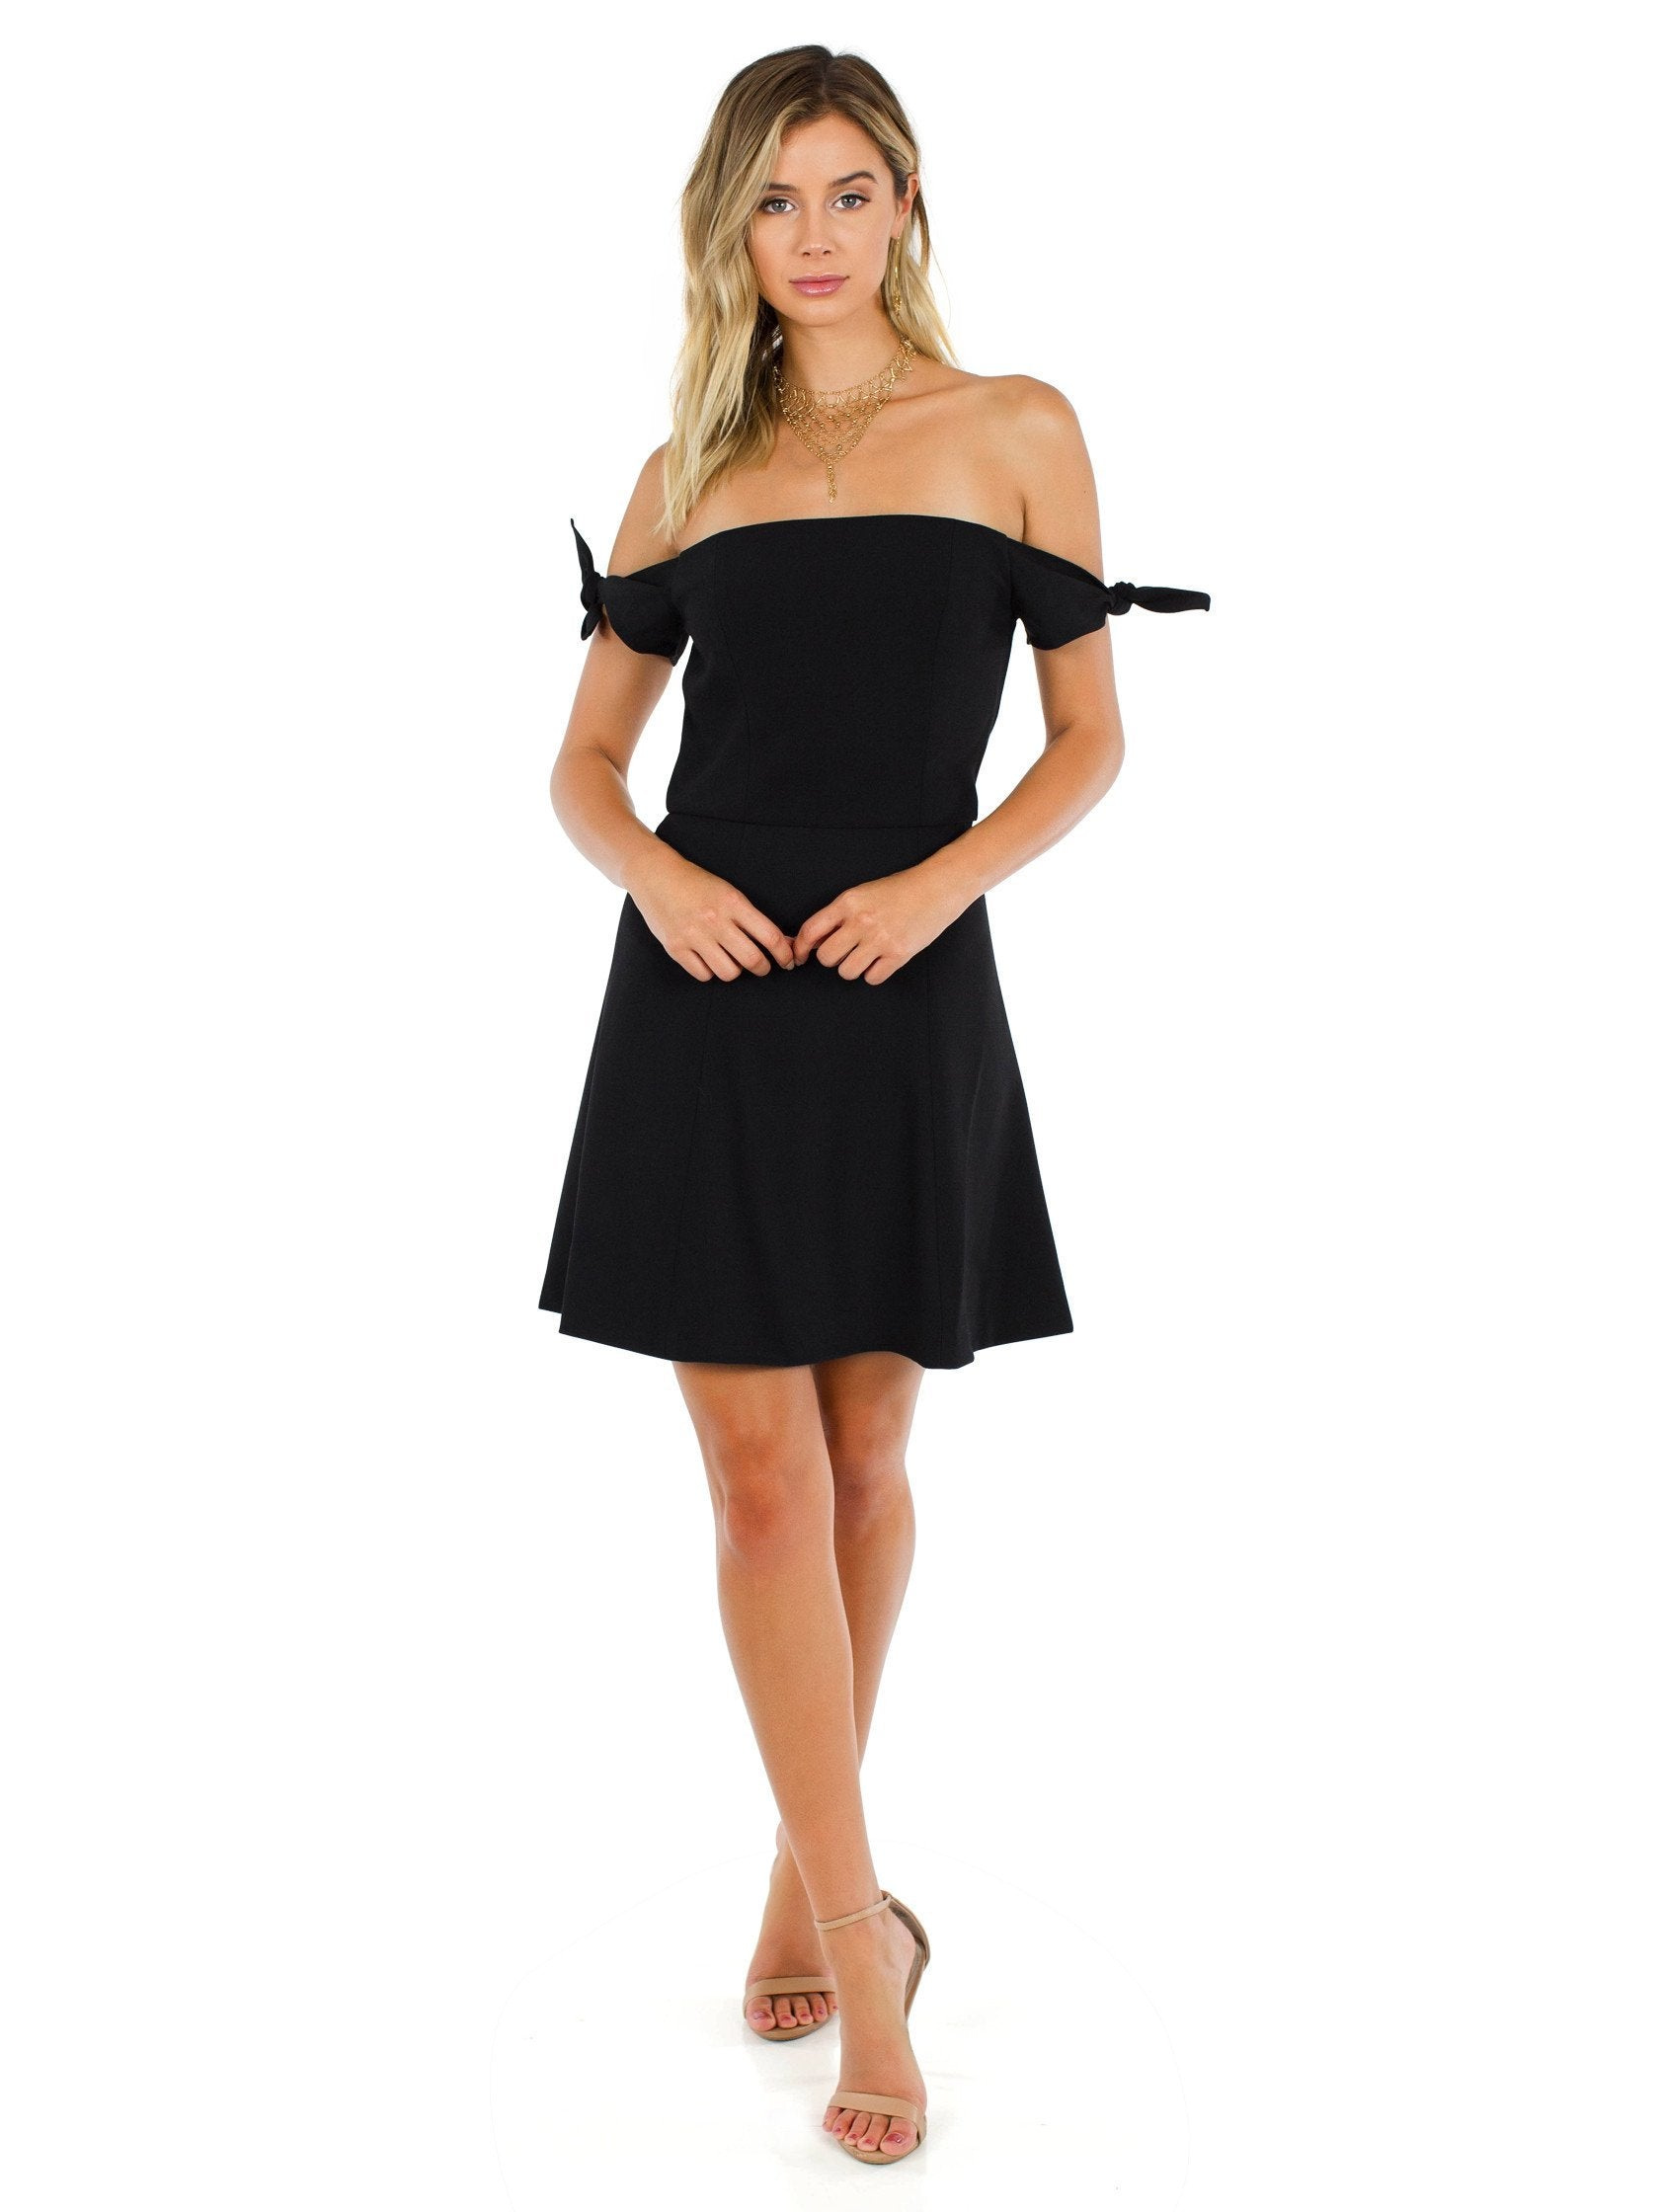 Girl outfit in a dress rental from French Connection called Whisper Light Off The Shoulder Dress